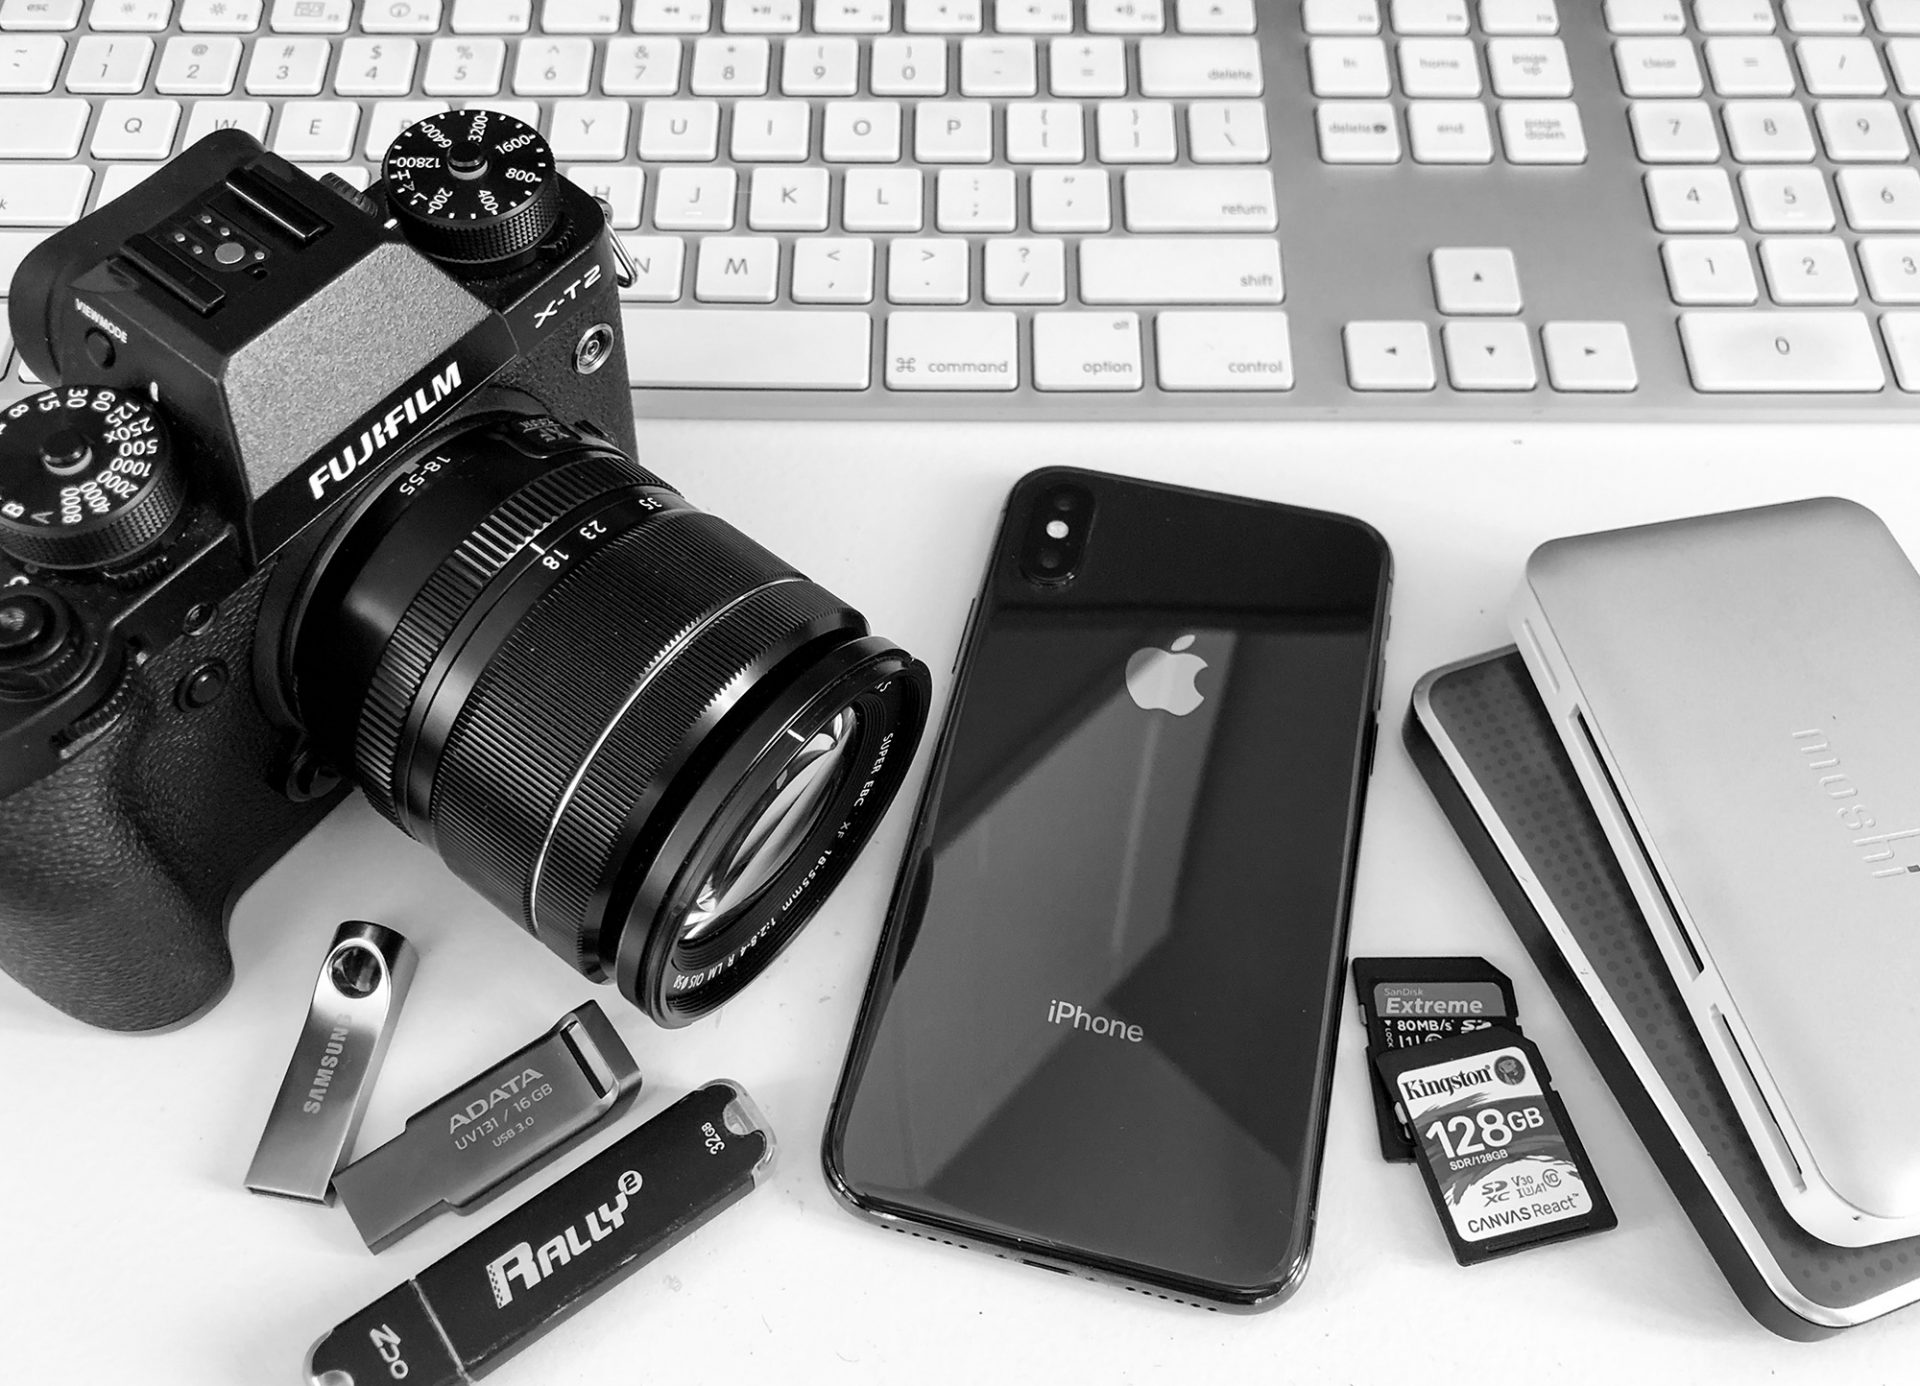 Lap top with Fujifilm camera, hard drives and SD cards